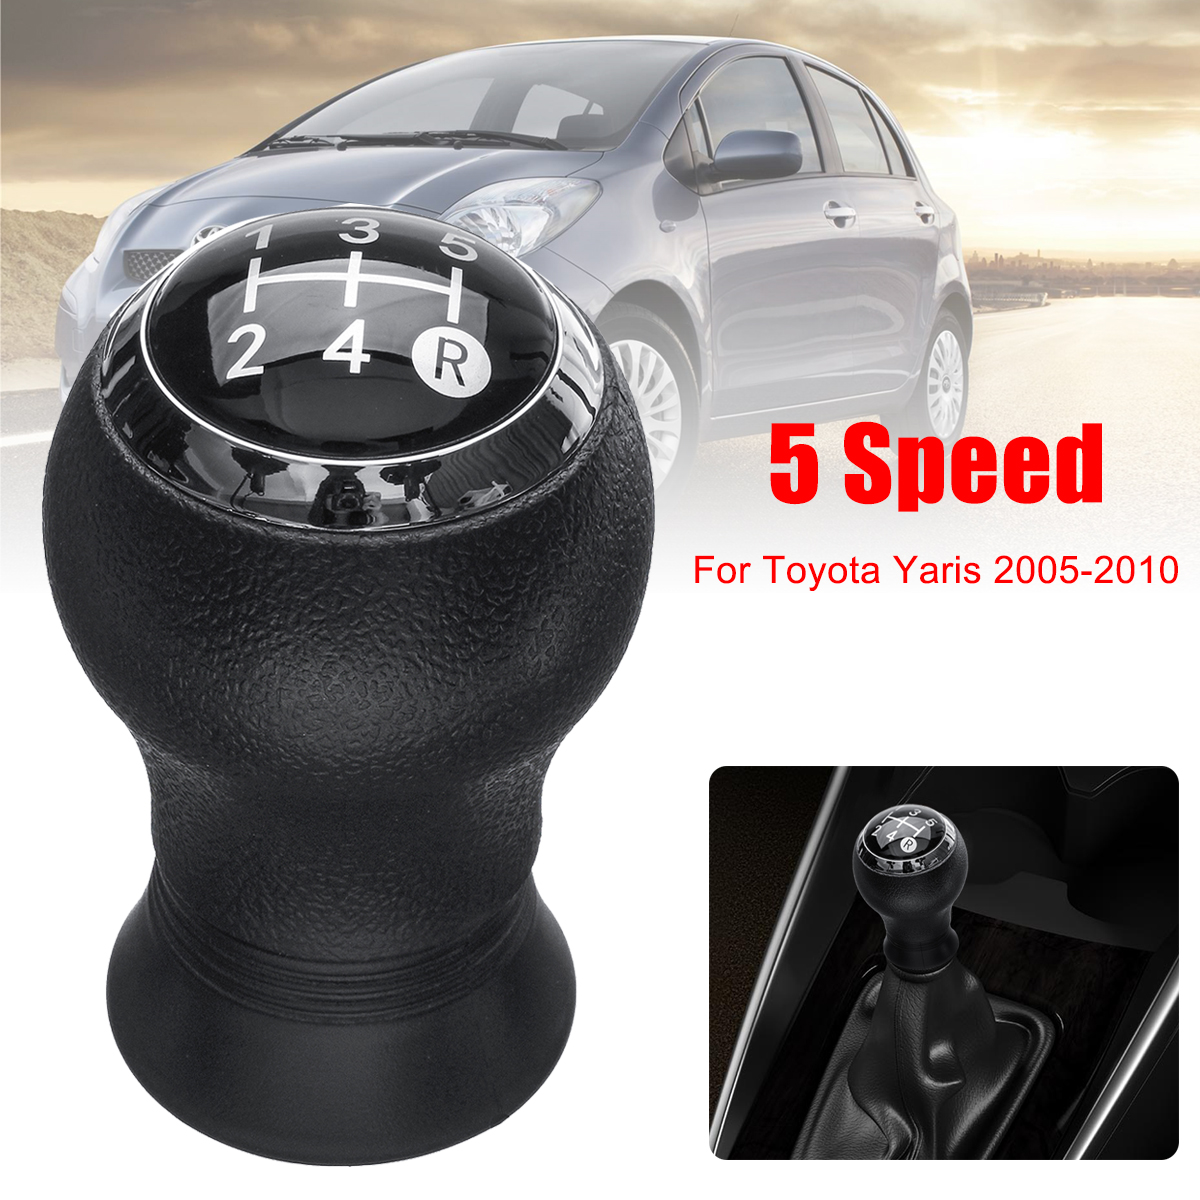 For Toyota Yaris 2005-2010 5 Speed MT Car Gear Shift Knob Head Gear Knob Cover Shifter Lever Stick 5 speed car gear shift knob transmission gear head handle shifter shift lever knobs